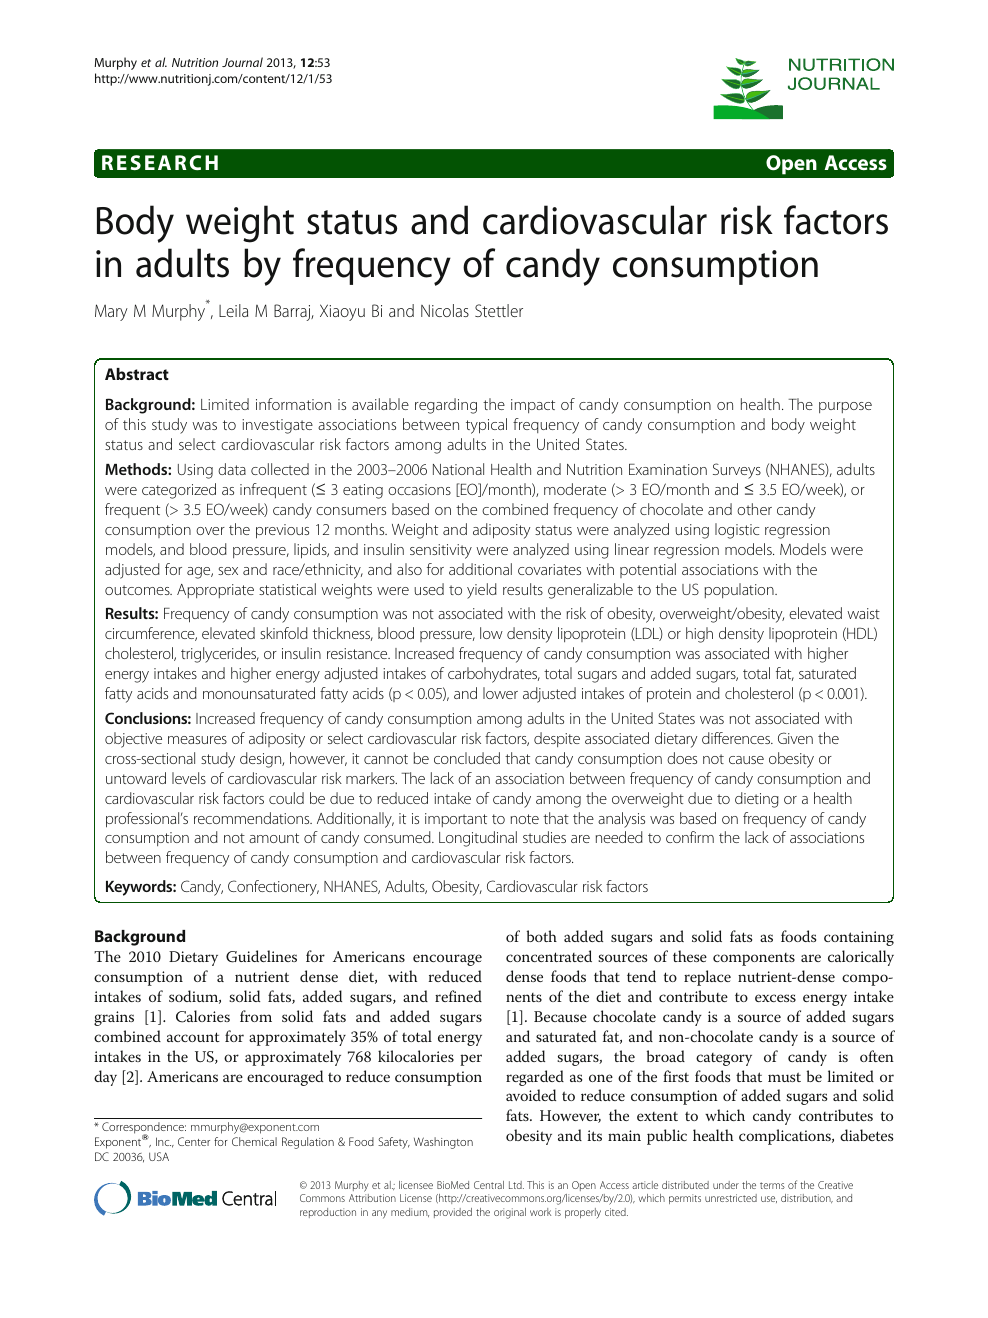 Body Weight Status And Cardiovascular Risk Factors In Adults By